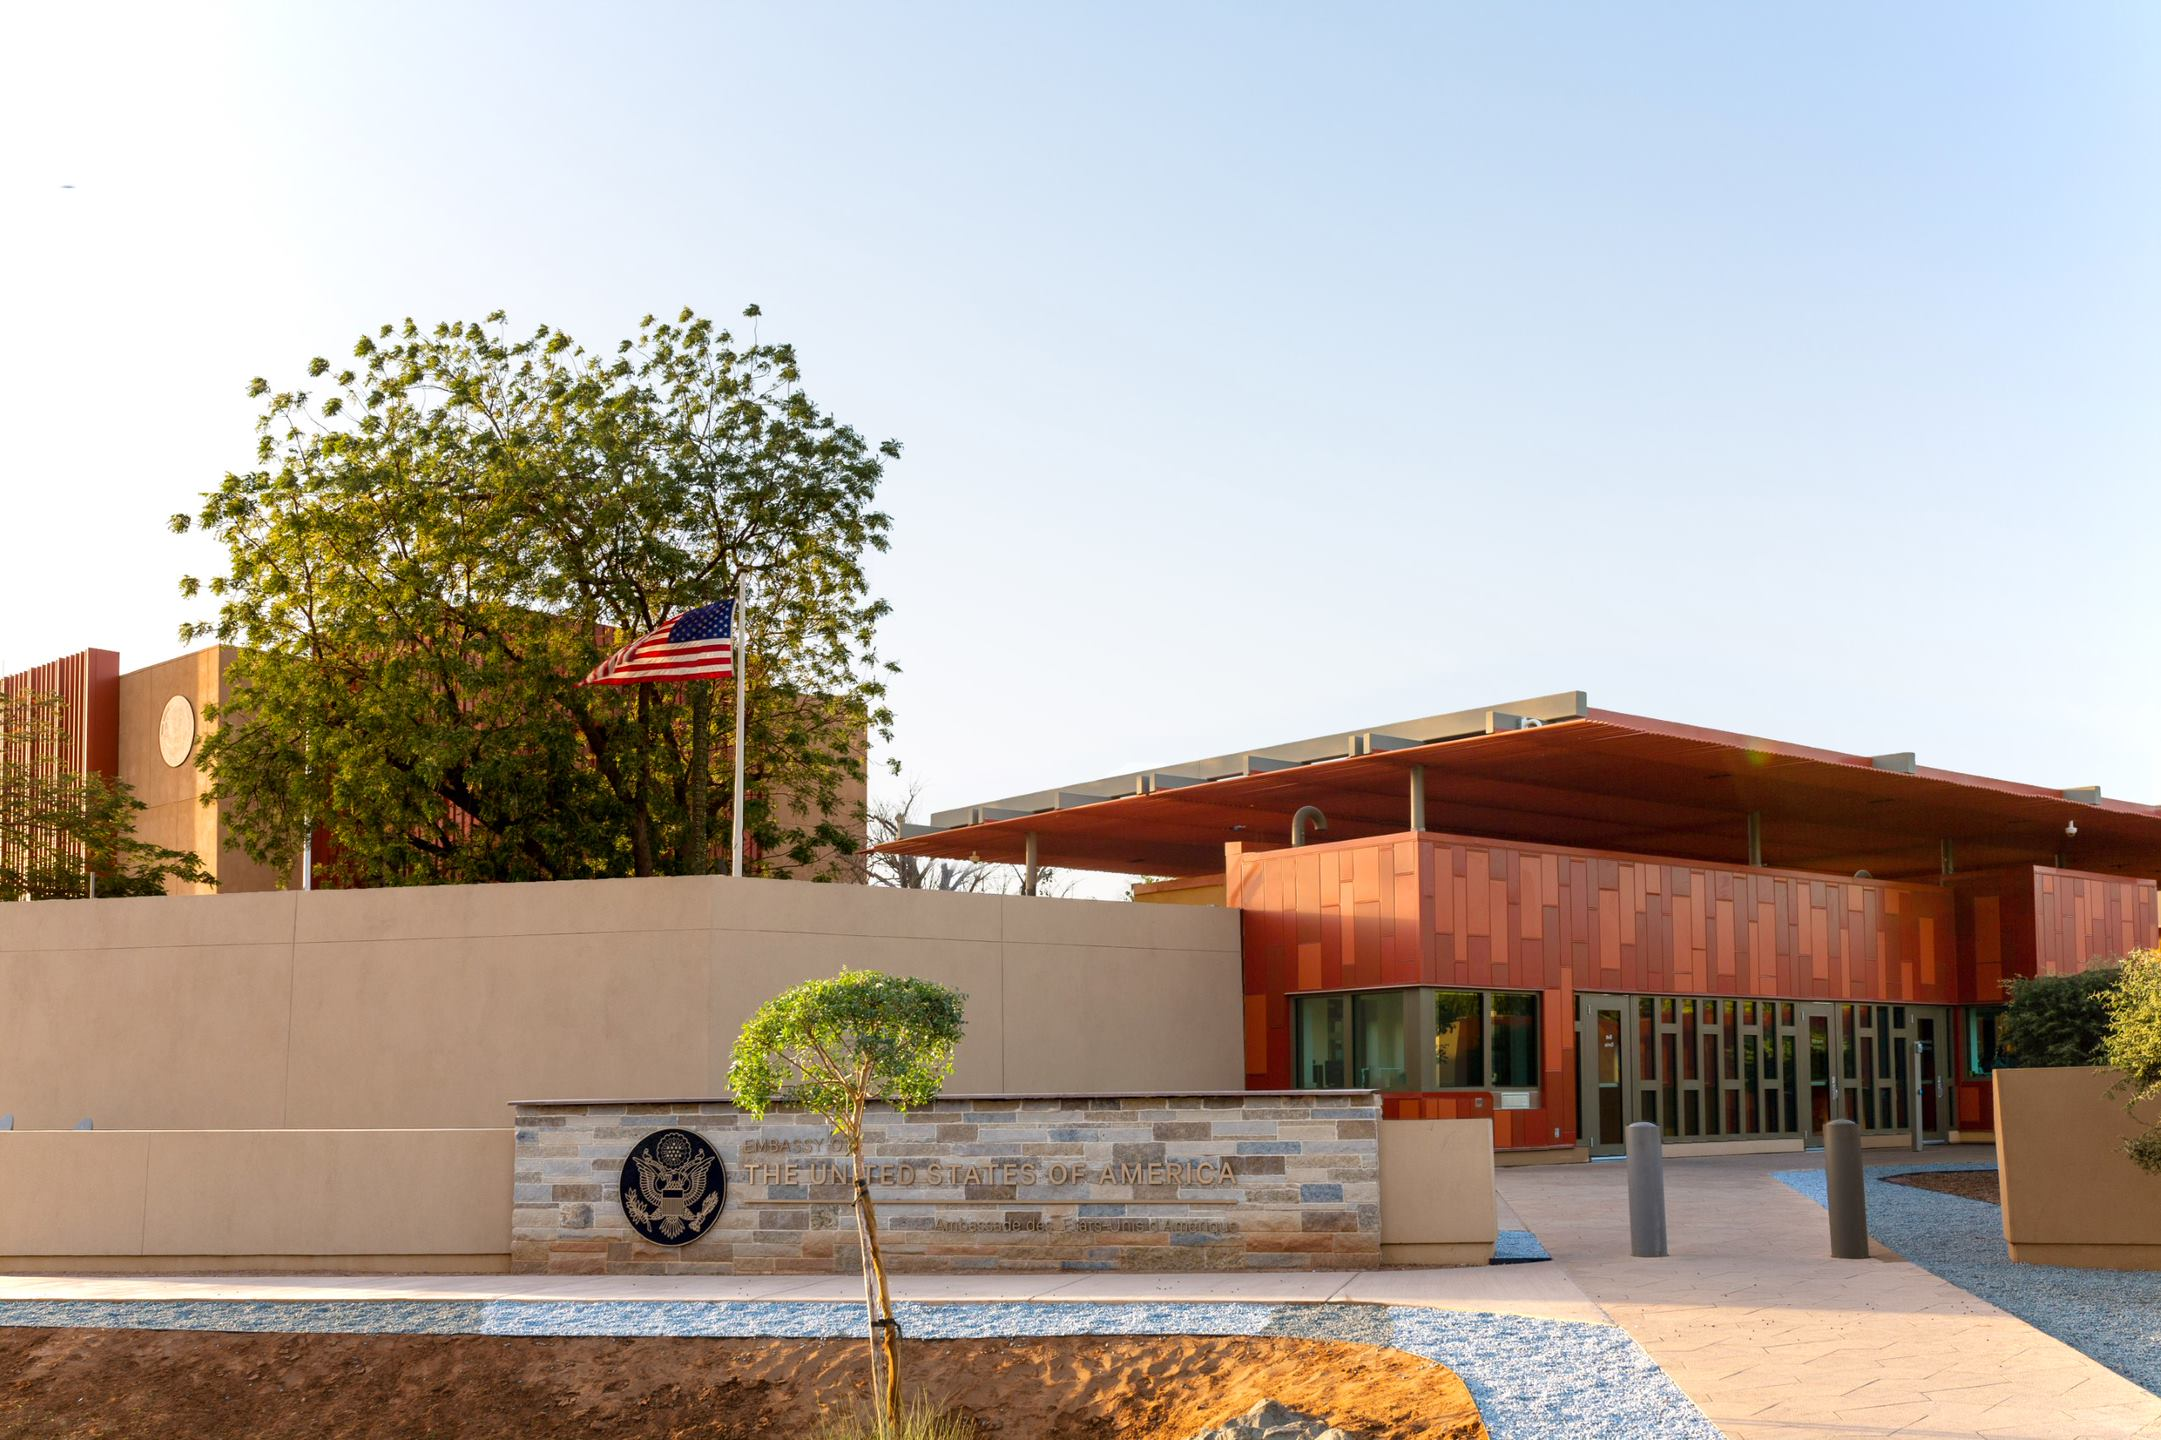 The American flag flies above the new U.S. embassy building in Niger